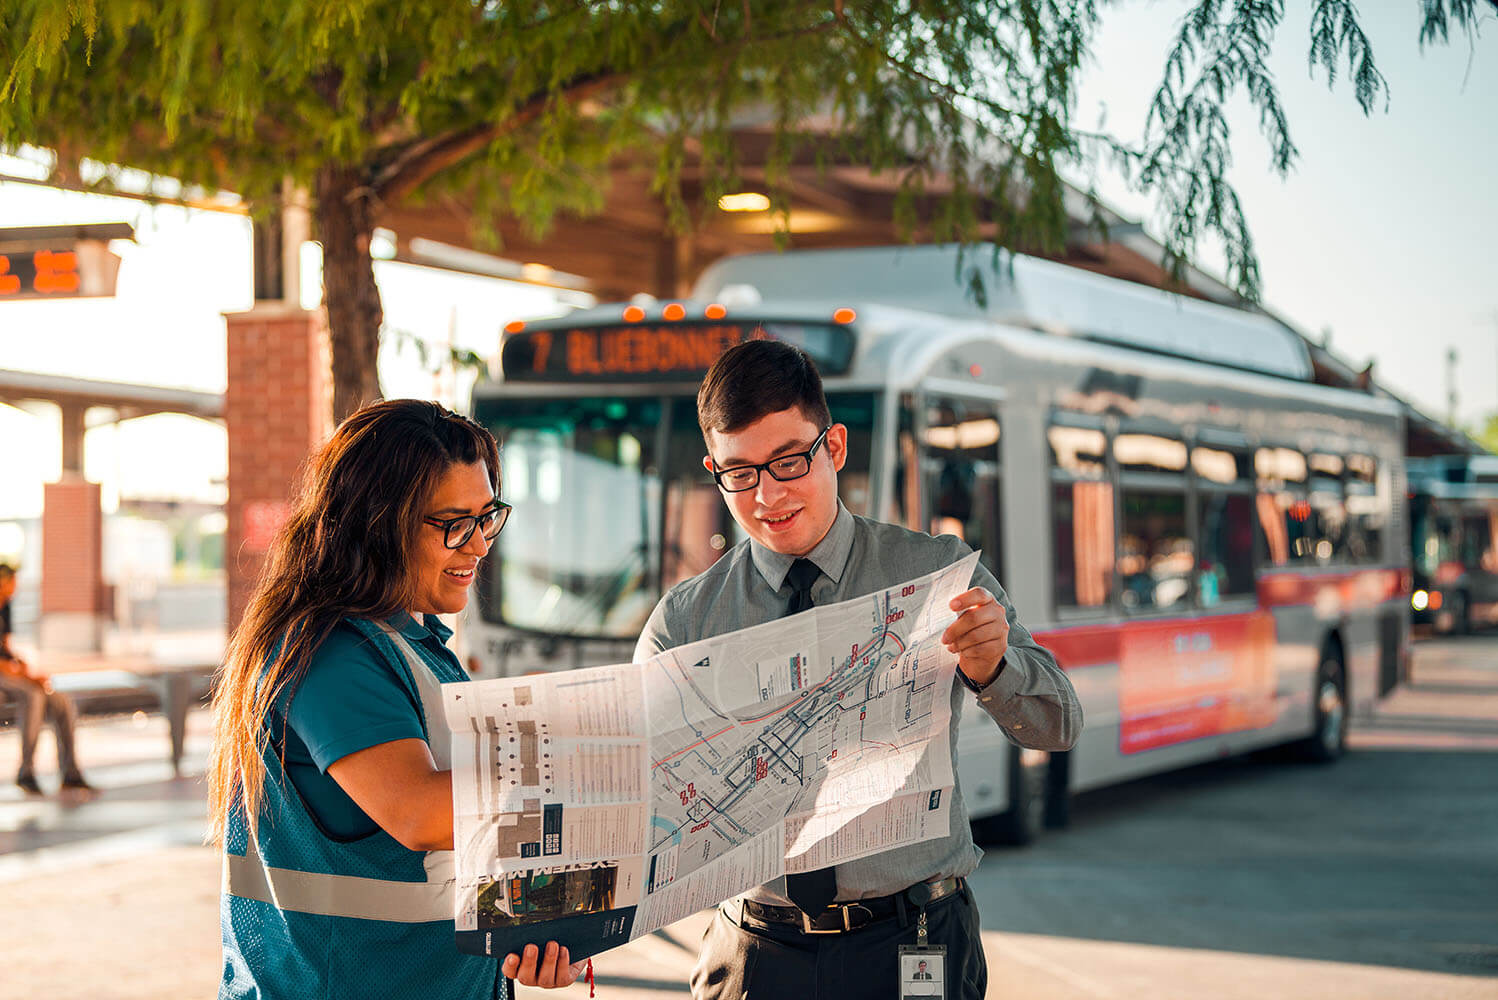 Two people searching a transit map